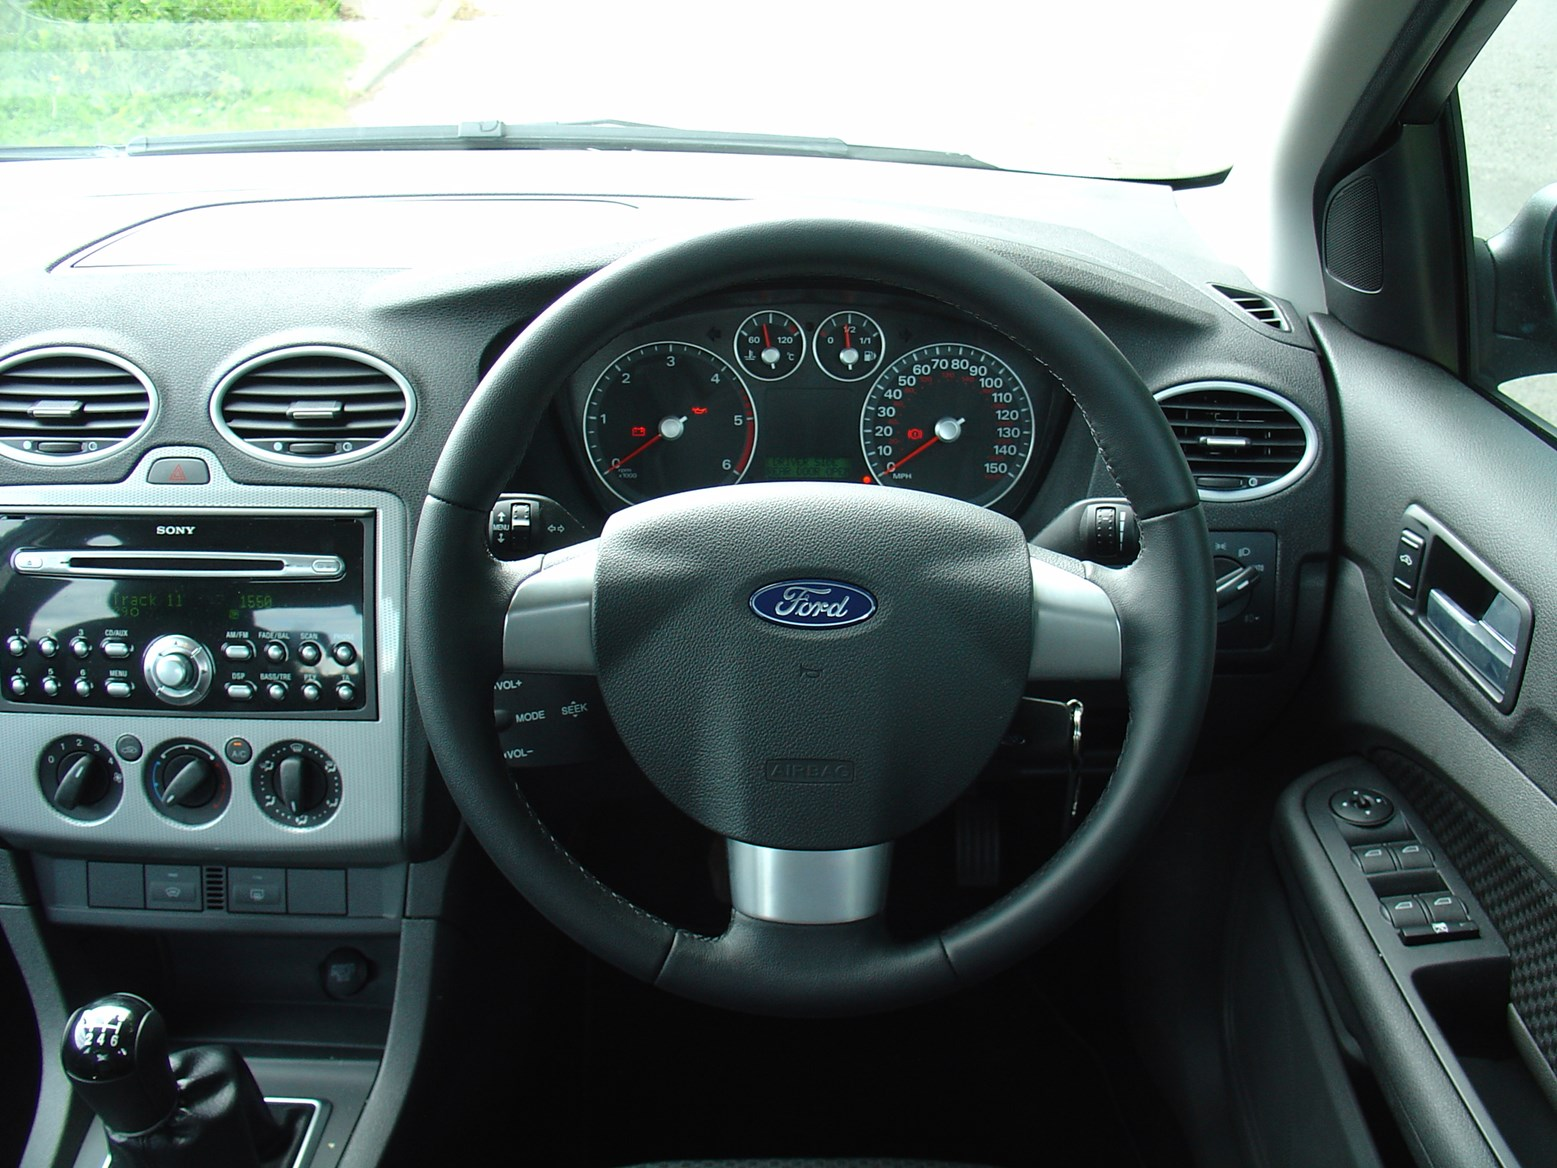 Interior: Ford Focus Saloon Review (2005 - 2009)